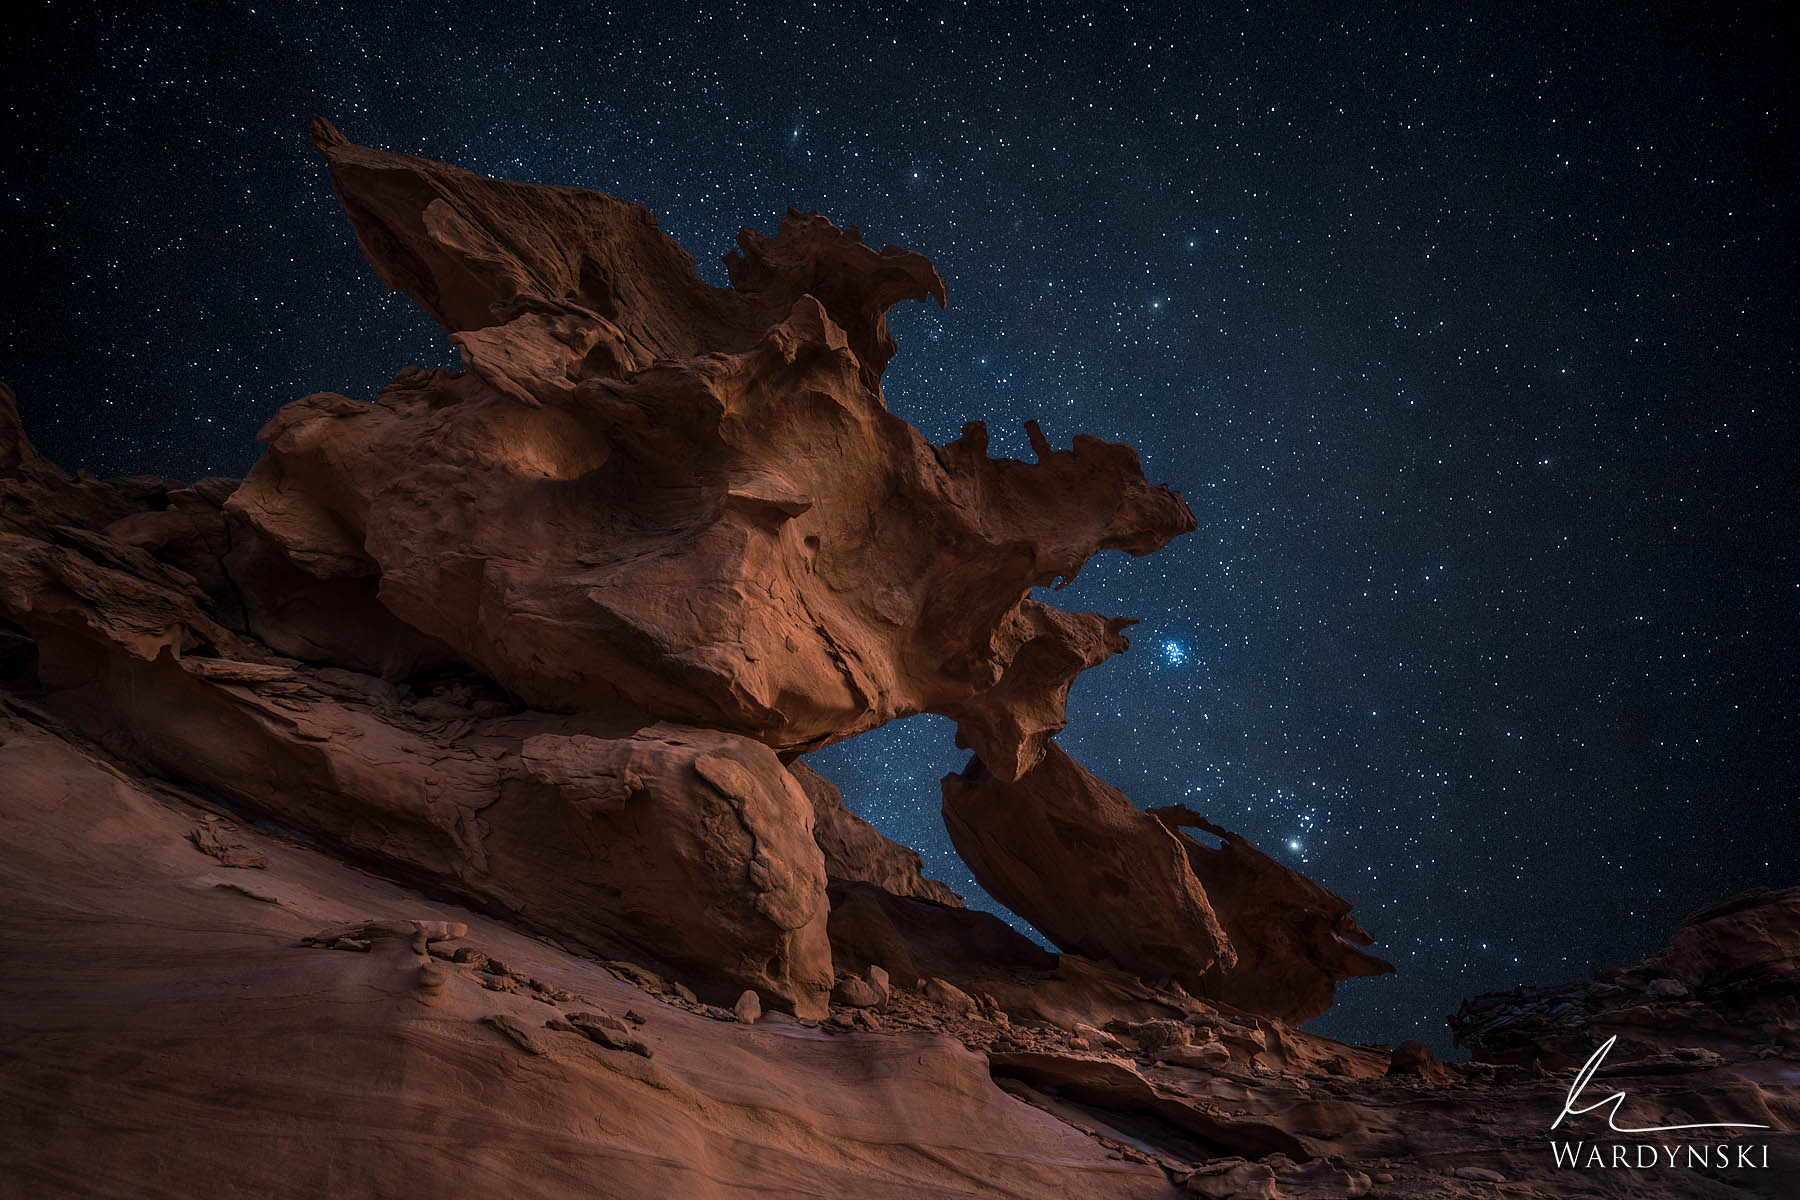 night, astro, fine art print, photography, limited edition